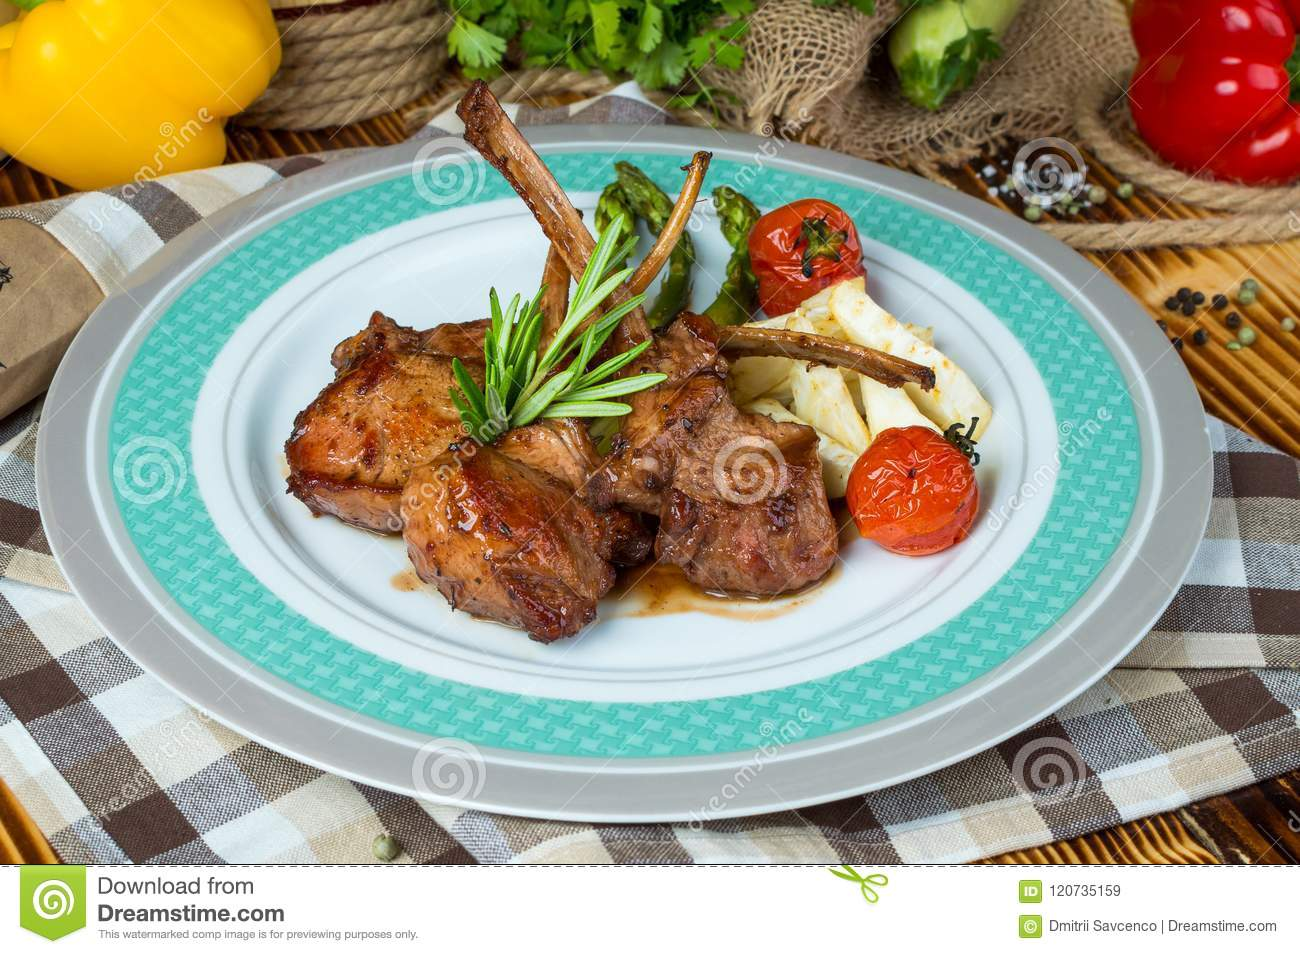 Veal ribs with Vegetables.